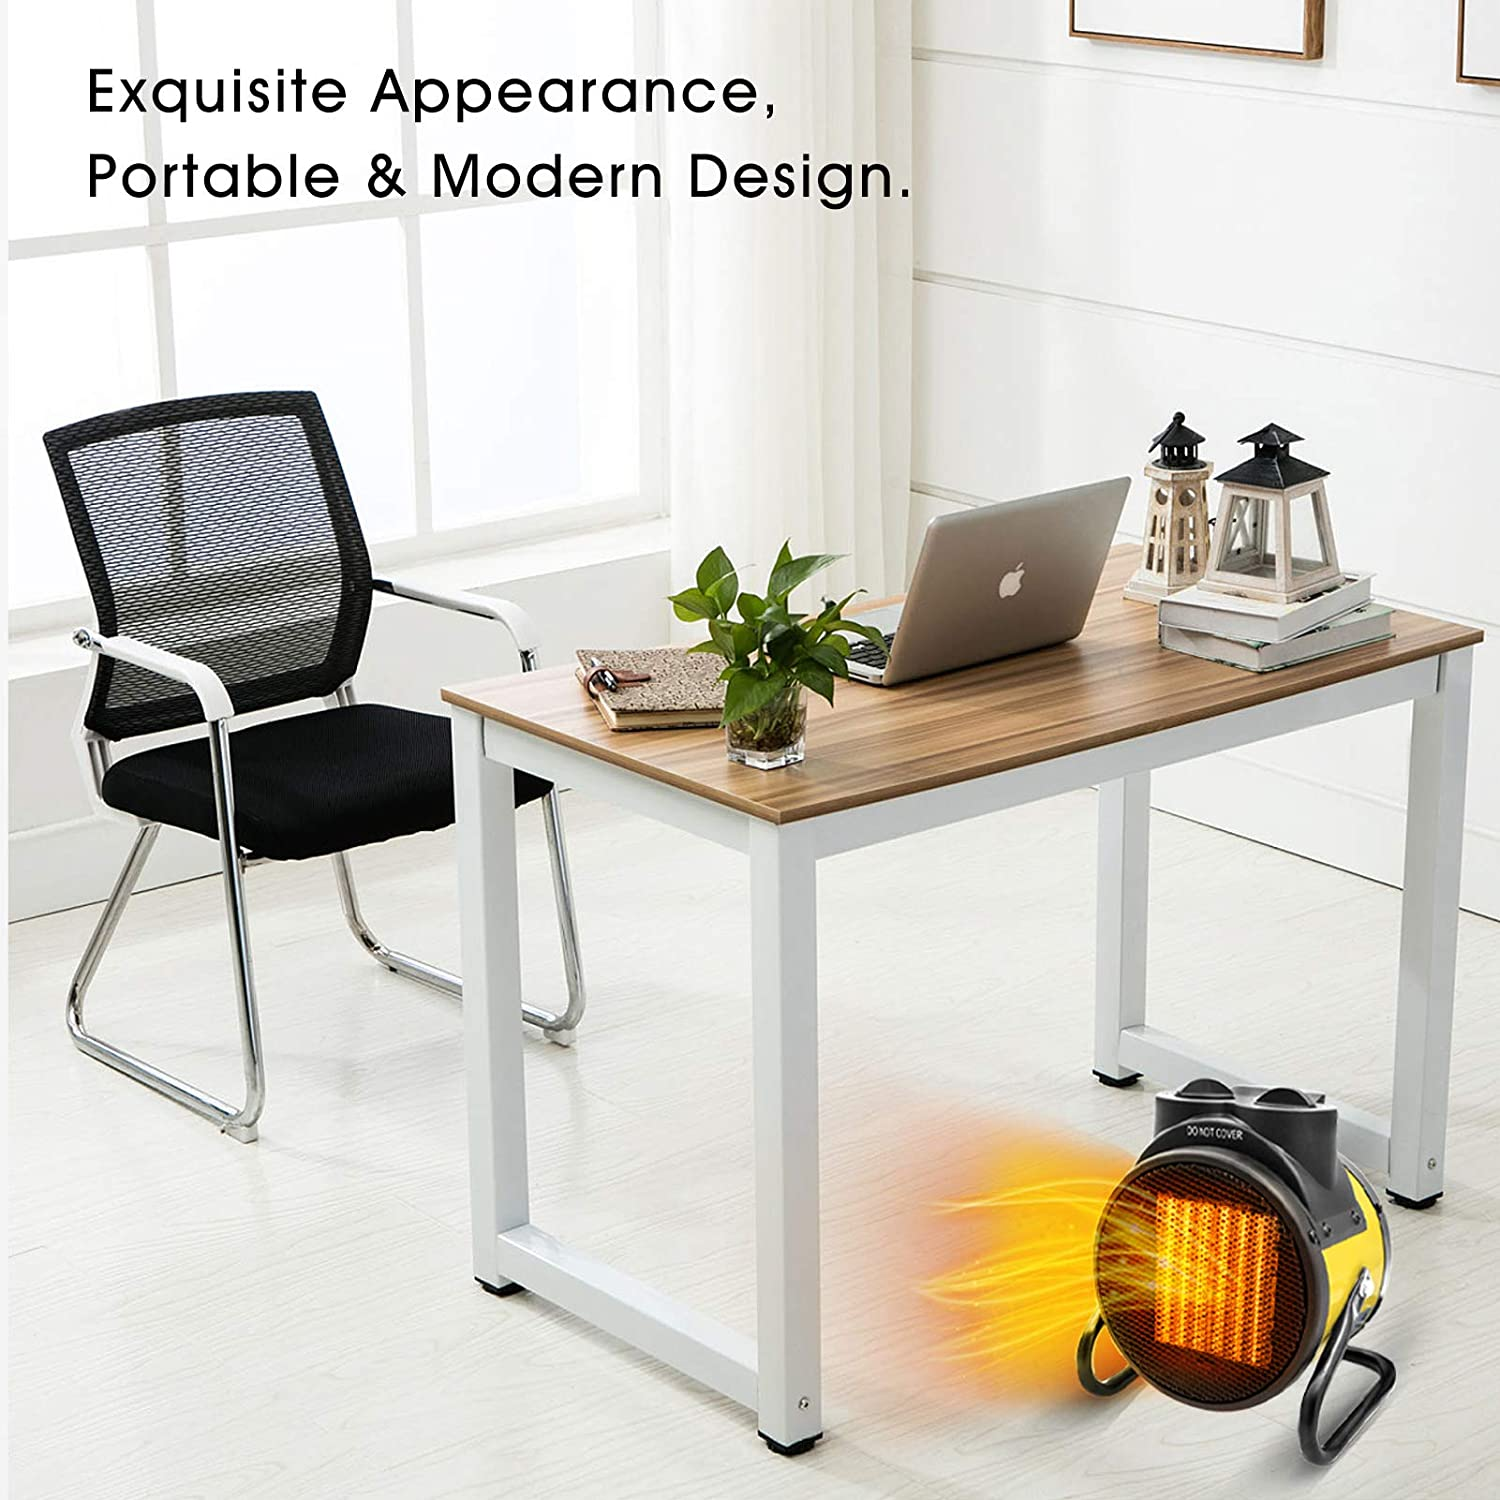 Grow Tent Outdoor Greenhouse AgiiMan Patio Space Heater Portable Thermostat,Heat Up in 3 Seconds,Adjustable Heating Settings,Small Fan Heater for Office Electric Garage Personal Heaters with Extra Long Cord